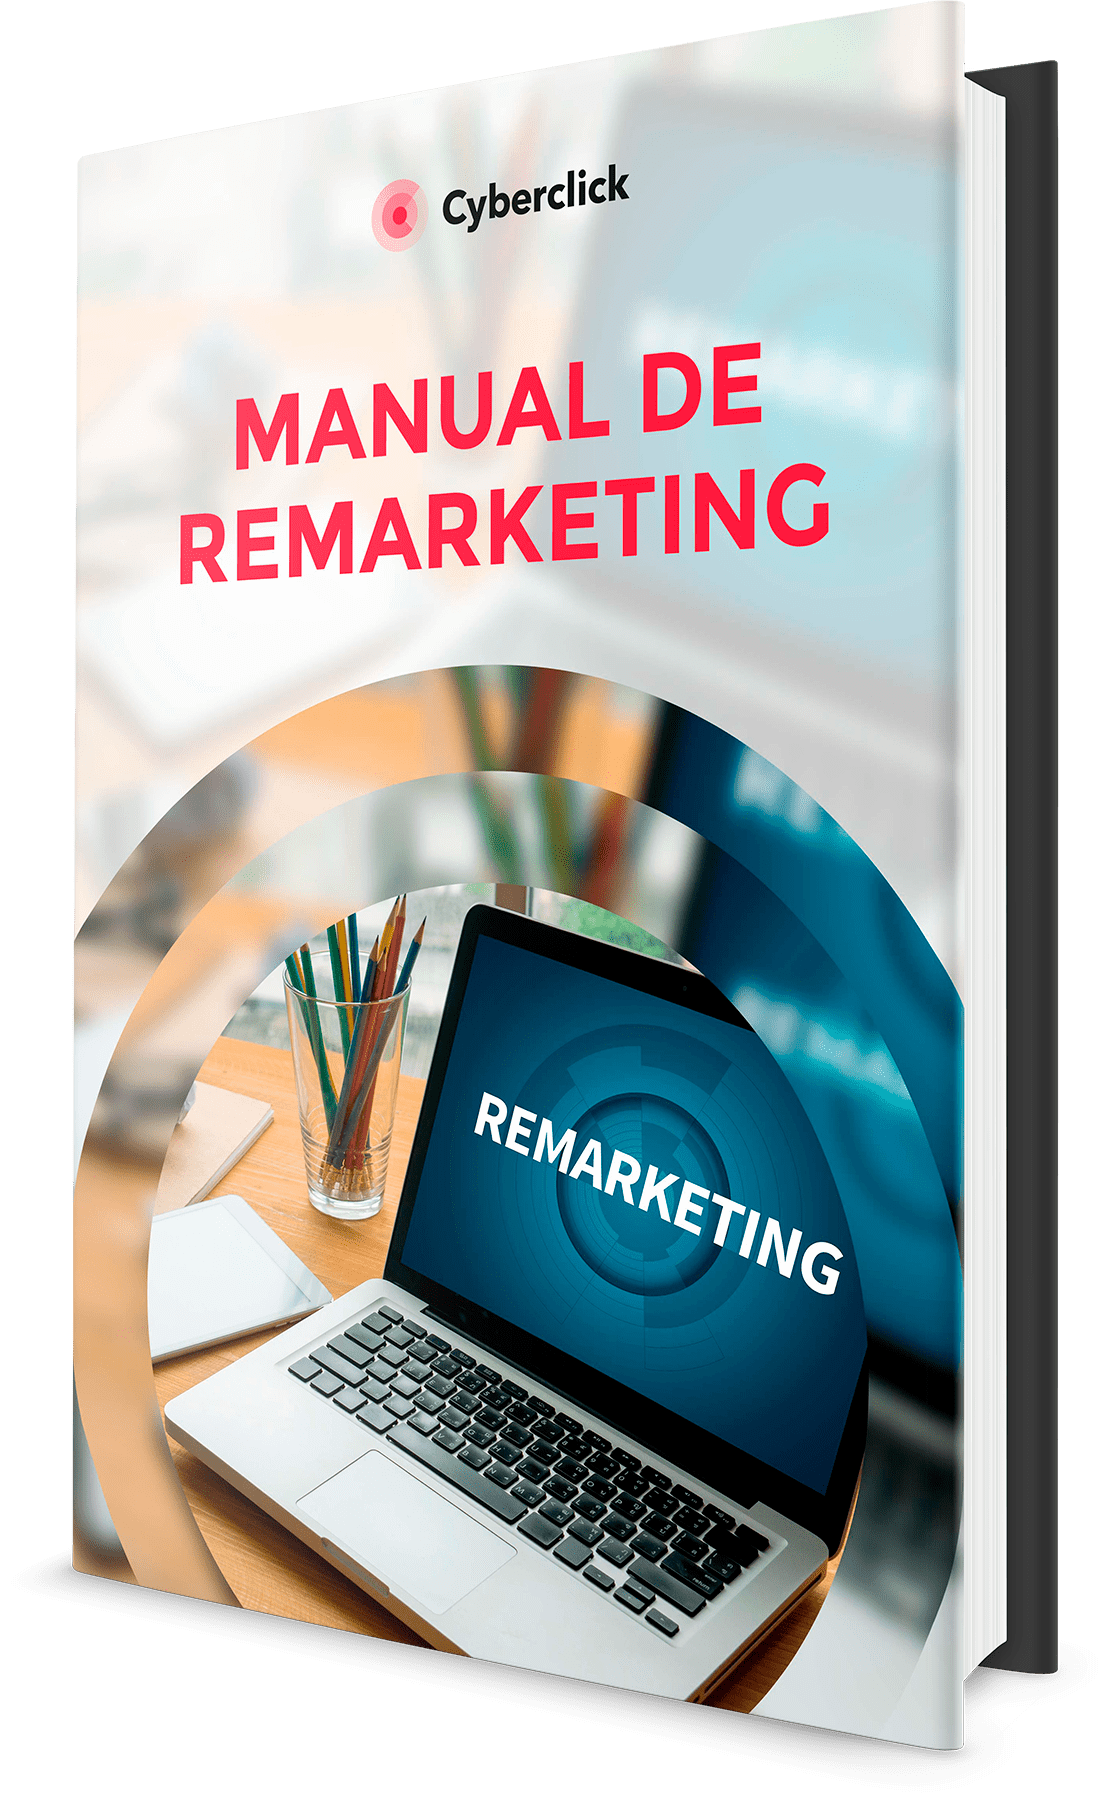 Cover ebook Remarketing-min.png